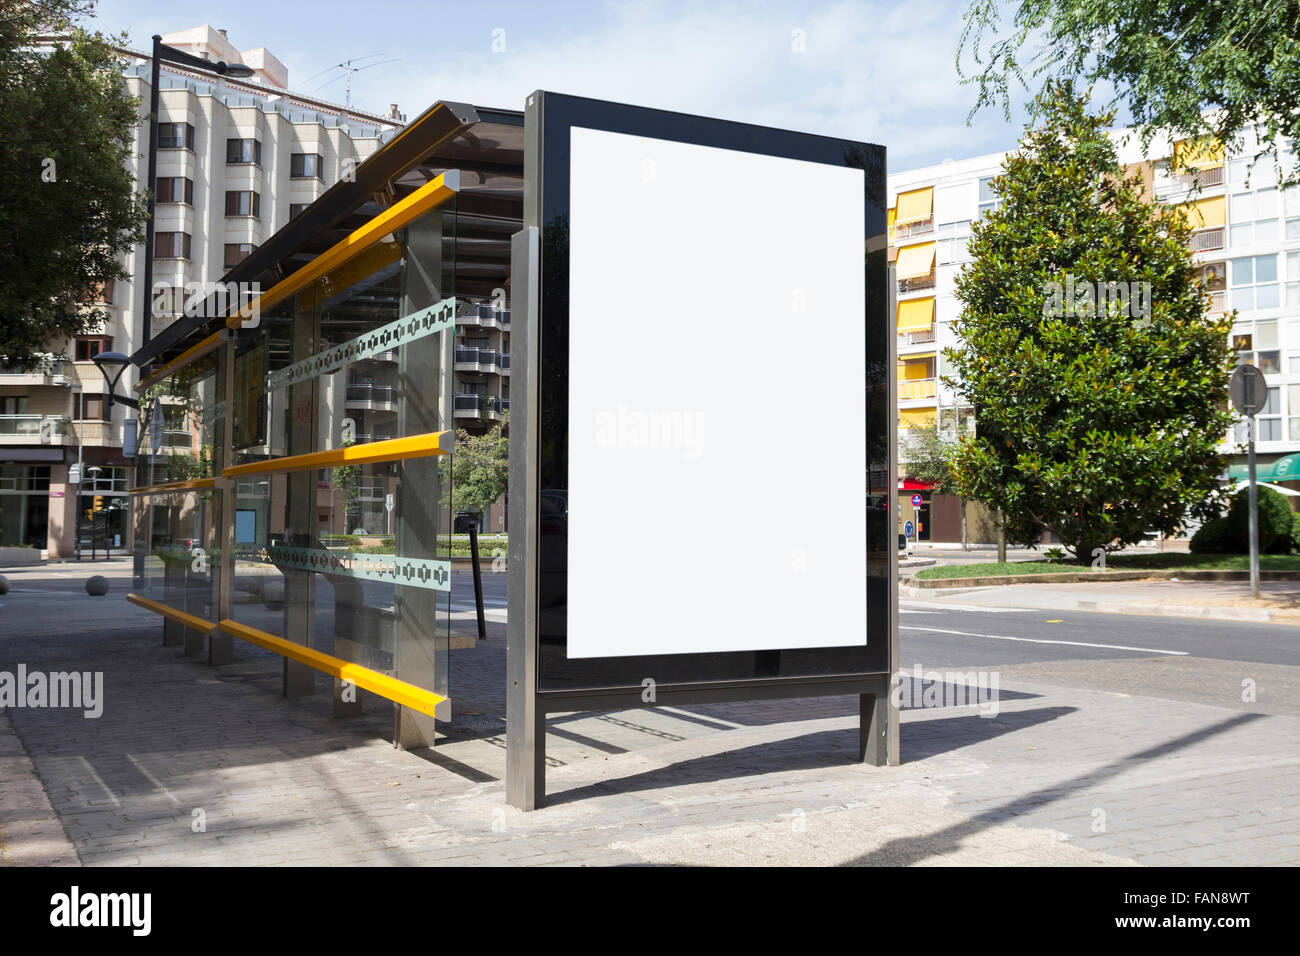 Blank billboard in a bus stop - Stock Image